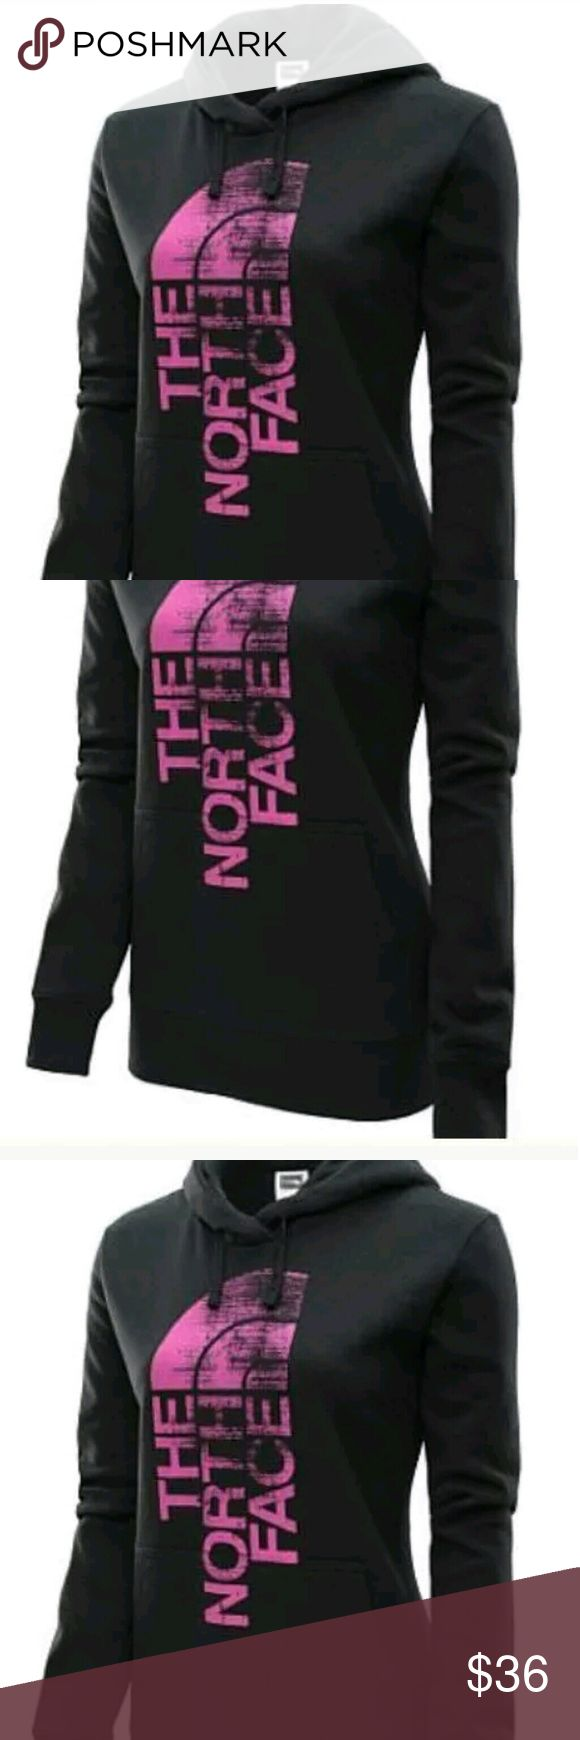 The North Face Women's? Pullover Hoodie The North Face Women's? Pullover Hoodie  Size : xs petite  Product Details  The North Face? women's? logo pullover hoodie is an exceptionally warm layering piece for your next chilly-weather workout. It's crafted with super-soft cotton fabric that delivers total comfort, while the welt kangaroo pocket has more than enough space for your essentials  No Trade North Face Tops Sweatshirts & Hoodies